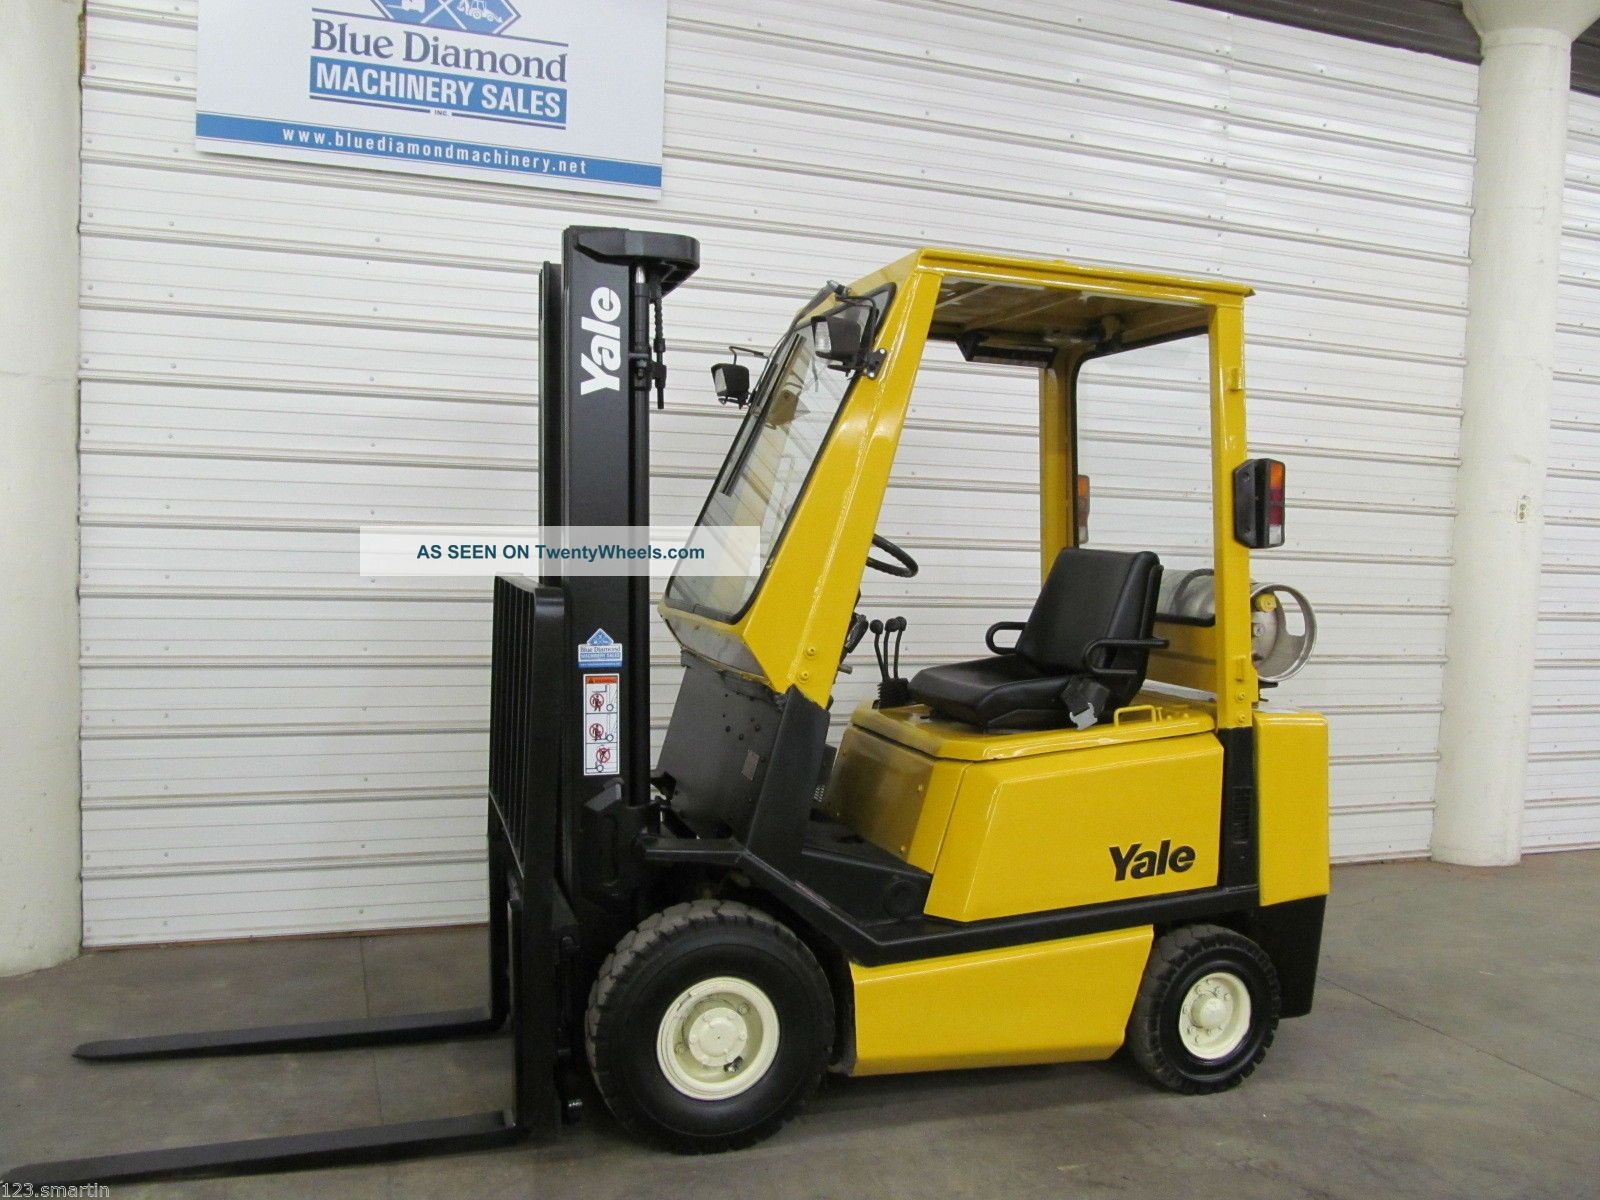 hyster electric forklift wiring diagram 49cc mini quad h50ft carton clamp